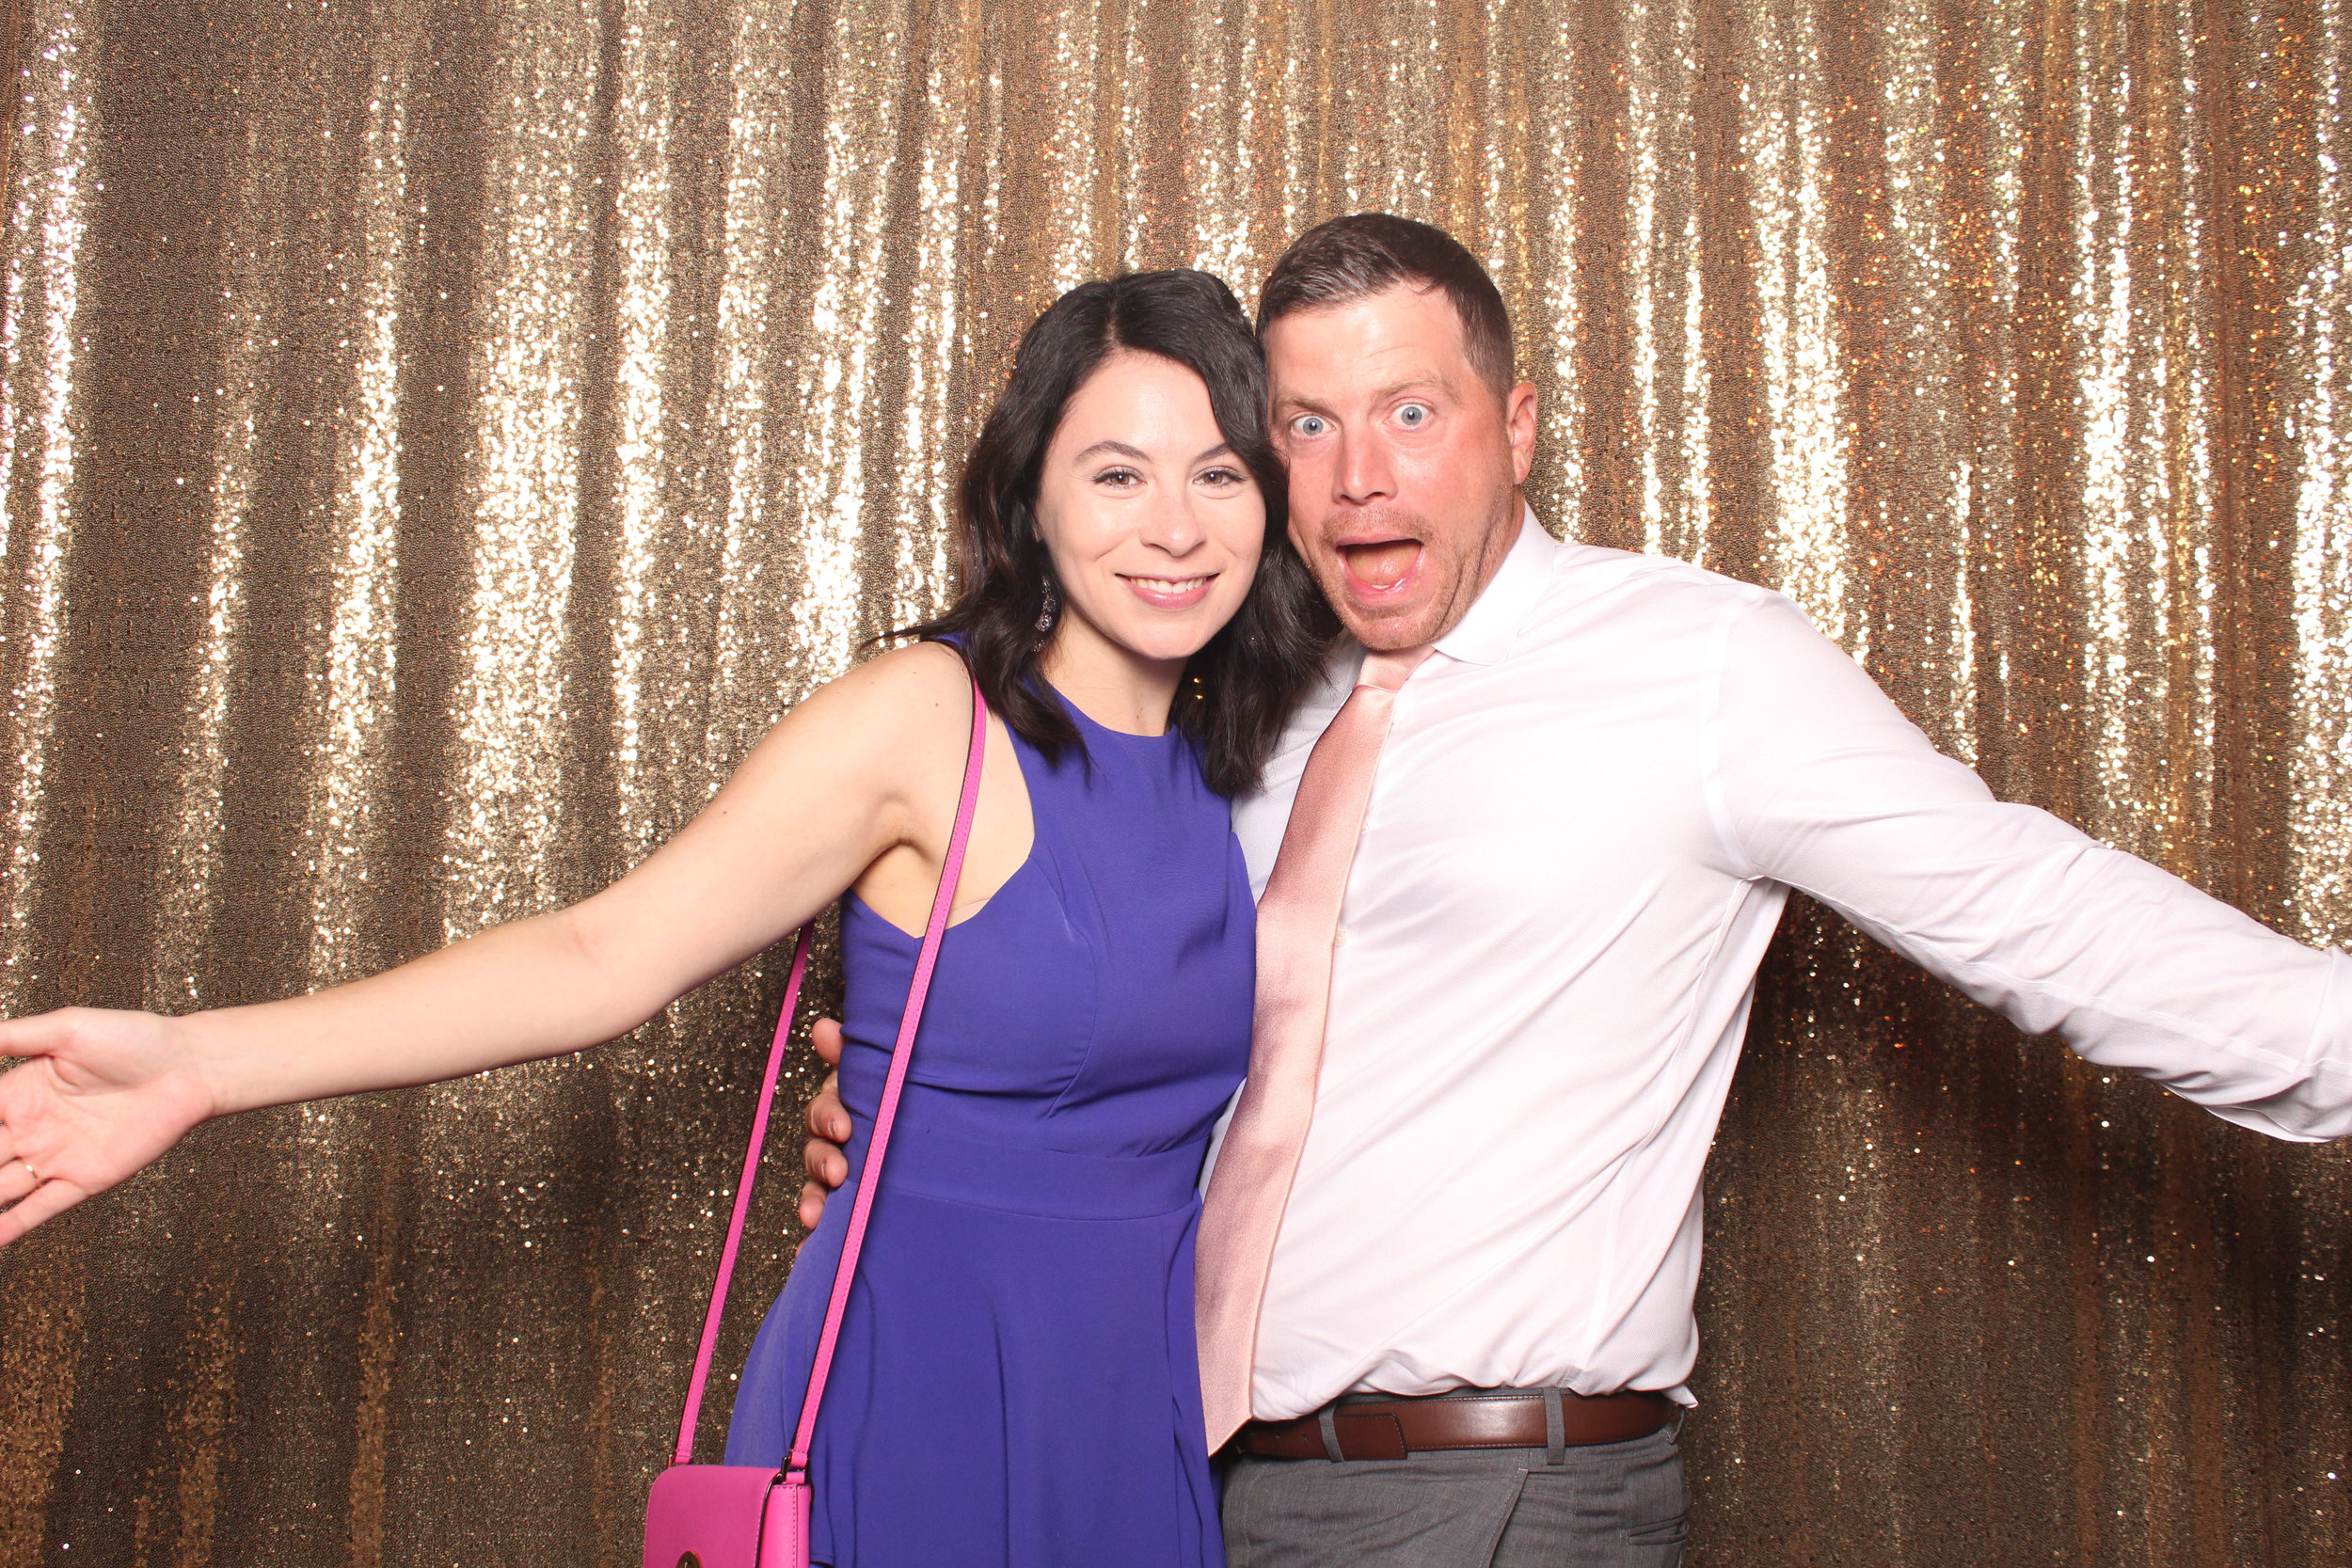 austin photo booth rental 42.jpg